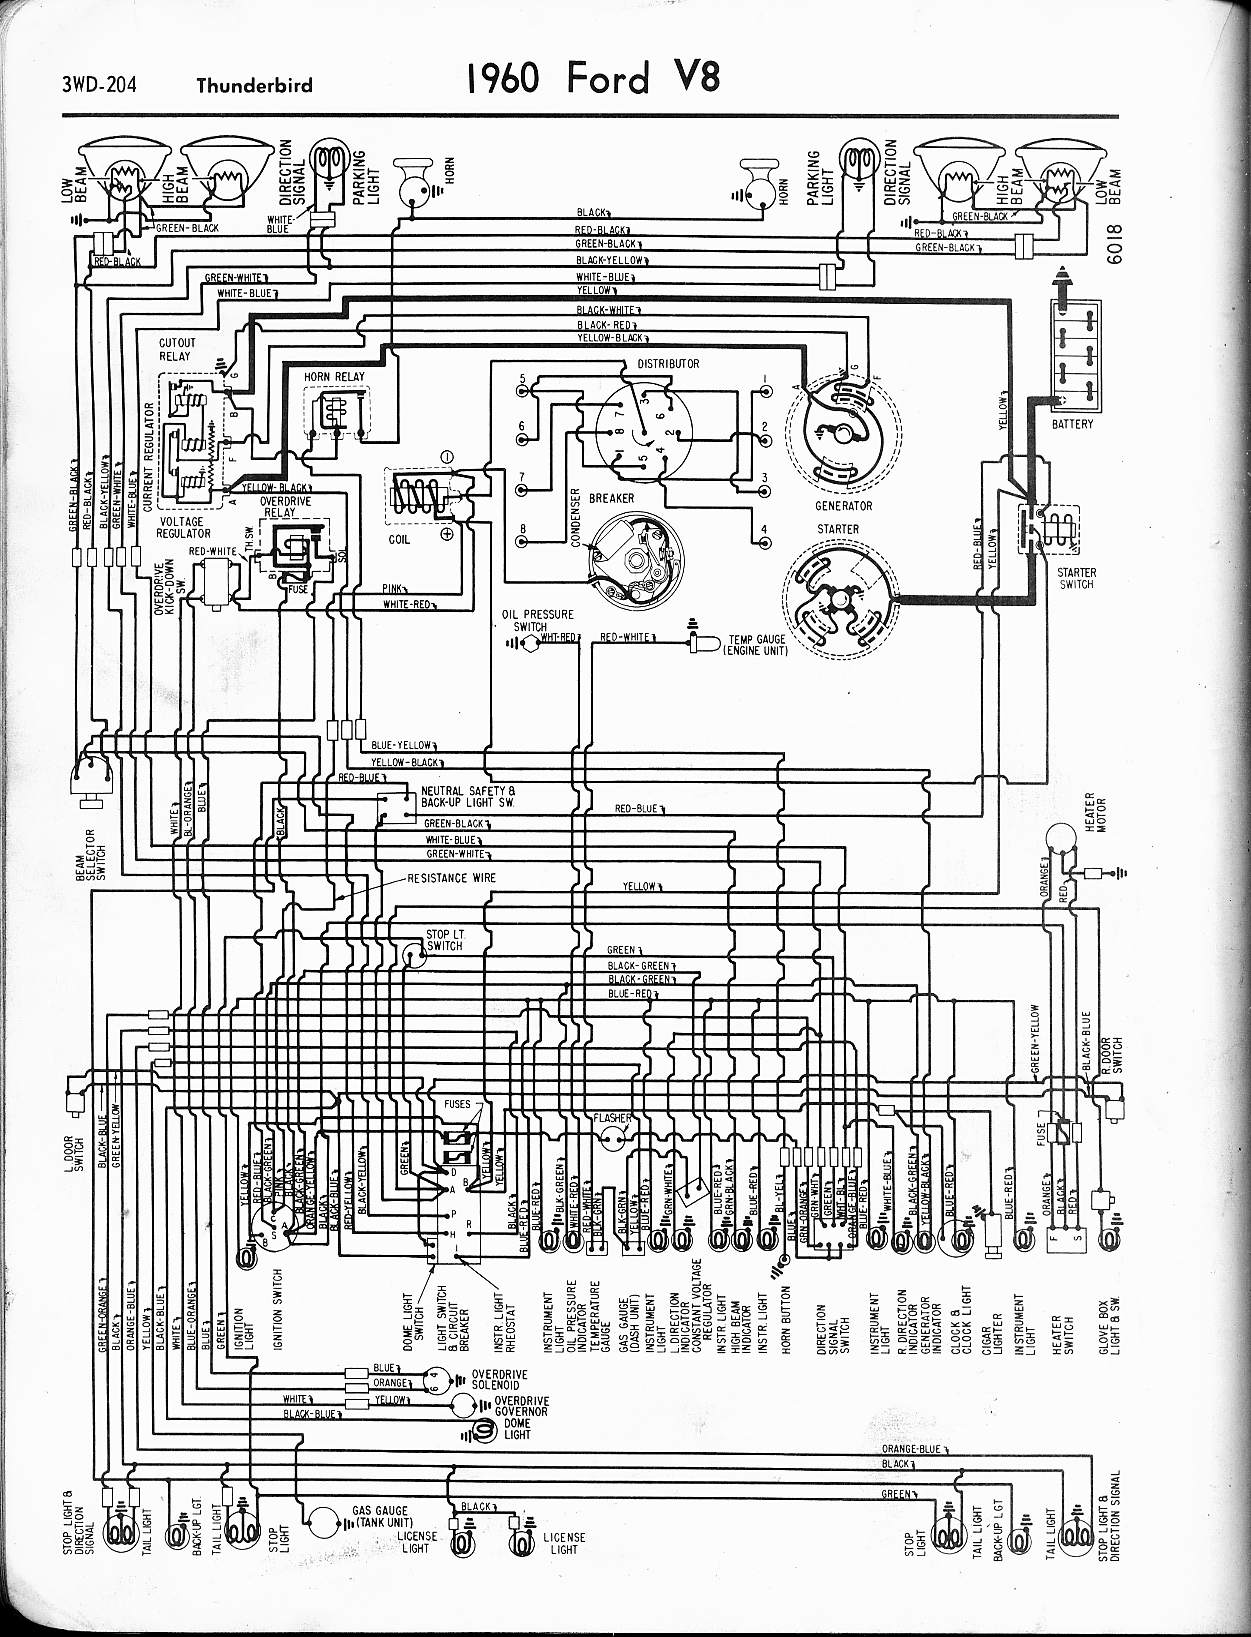 1967 thunderbird wiring diagram free. 1967. free printable ... 69 jeepster wiring diagram 69 nova wiring diagram